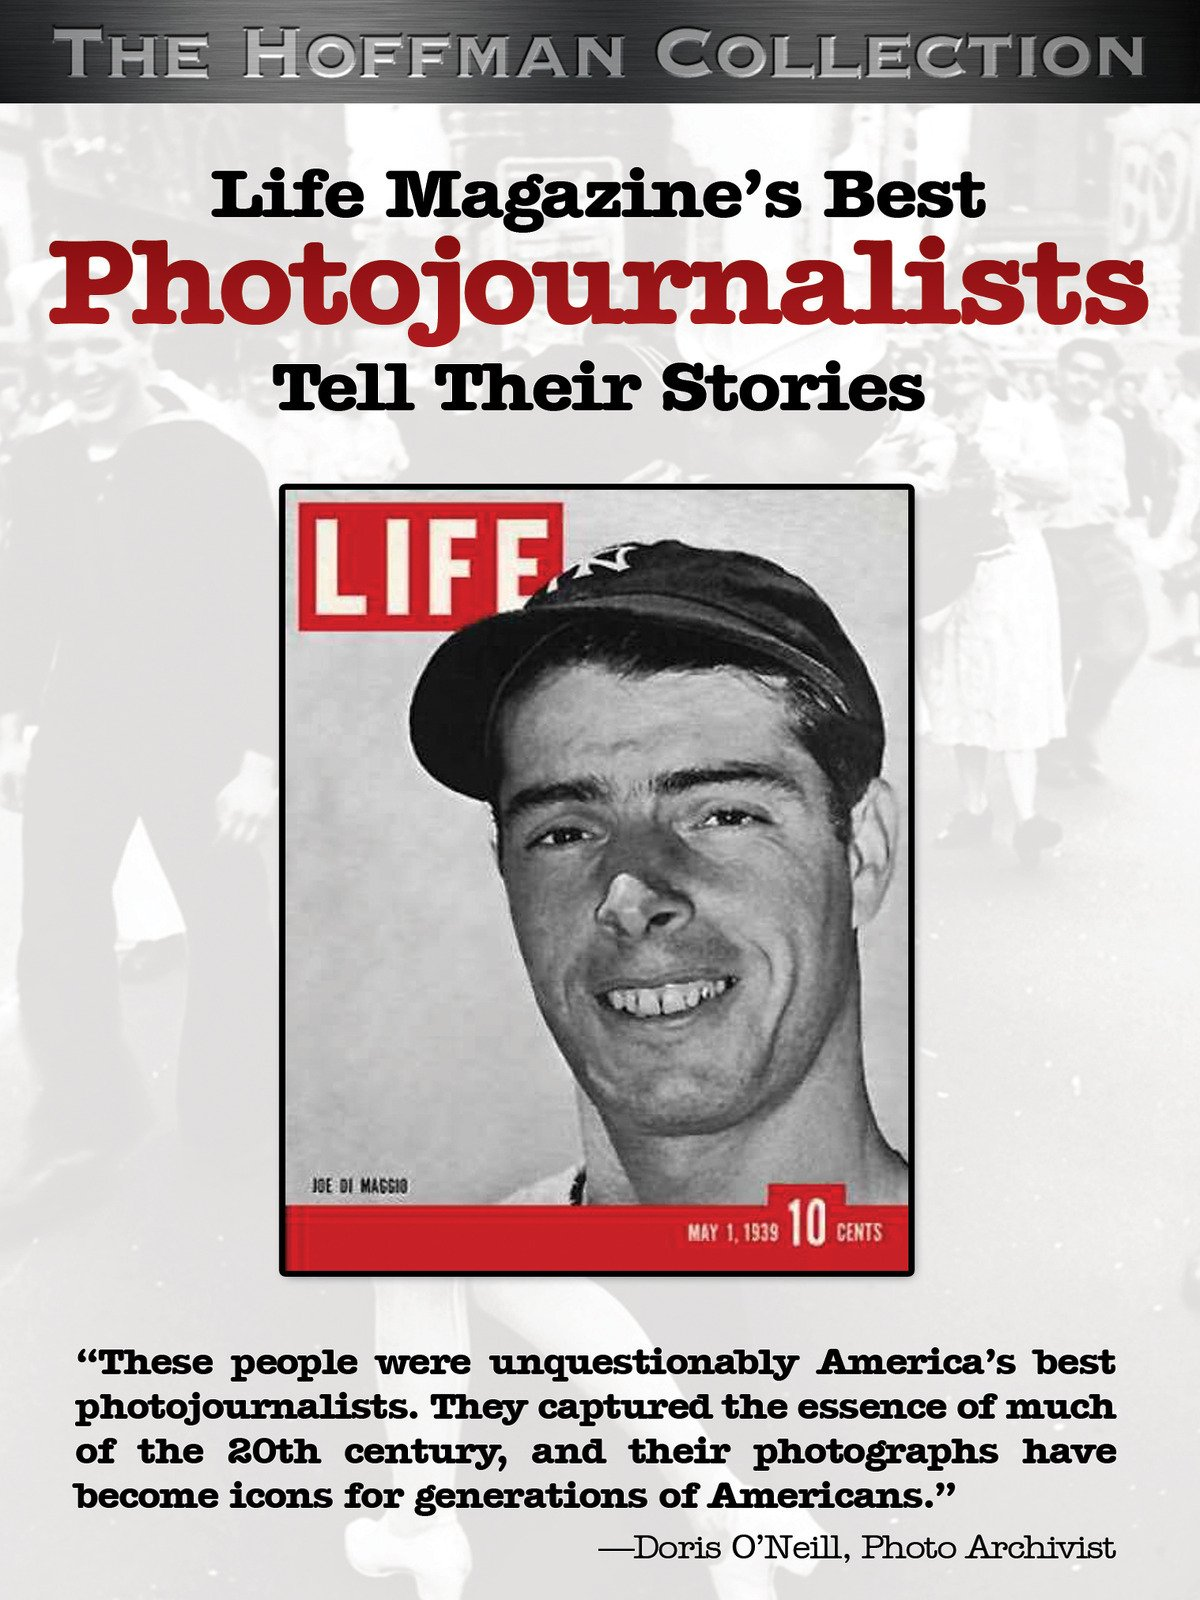 Life Magazine's Best Photojournalists Tell Their Stories